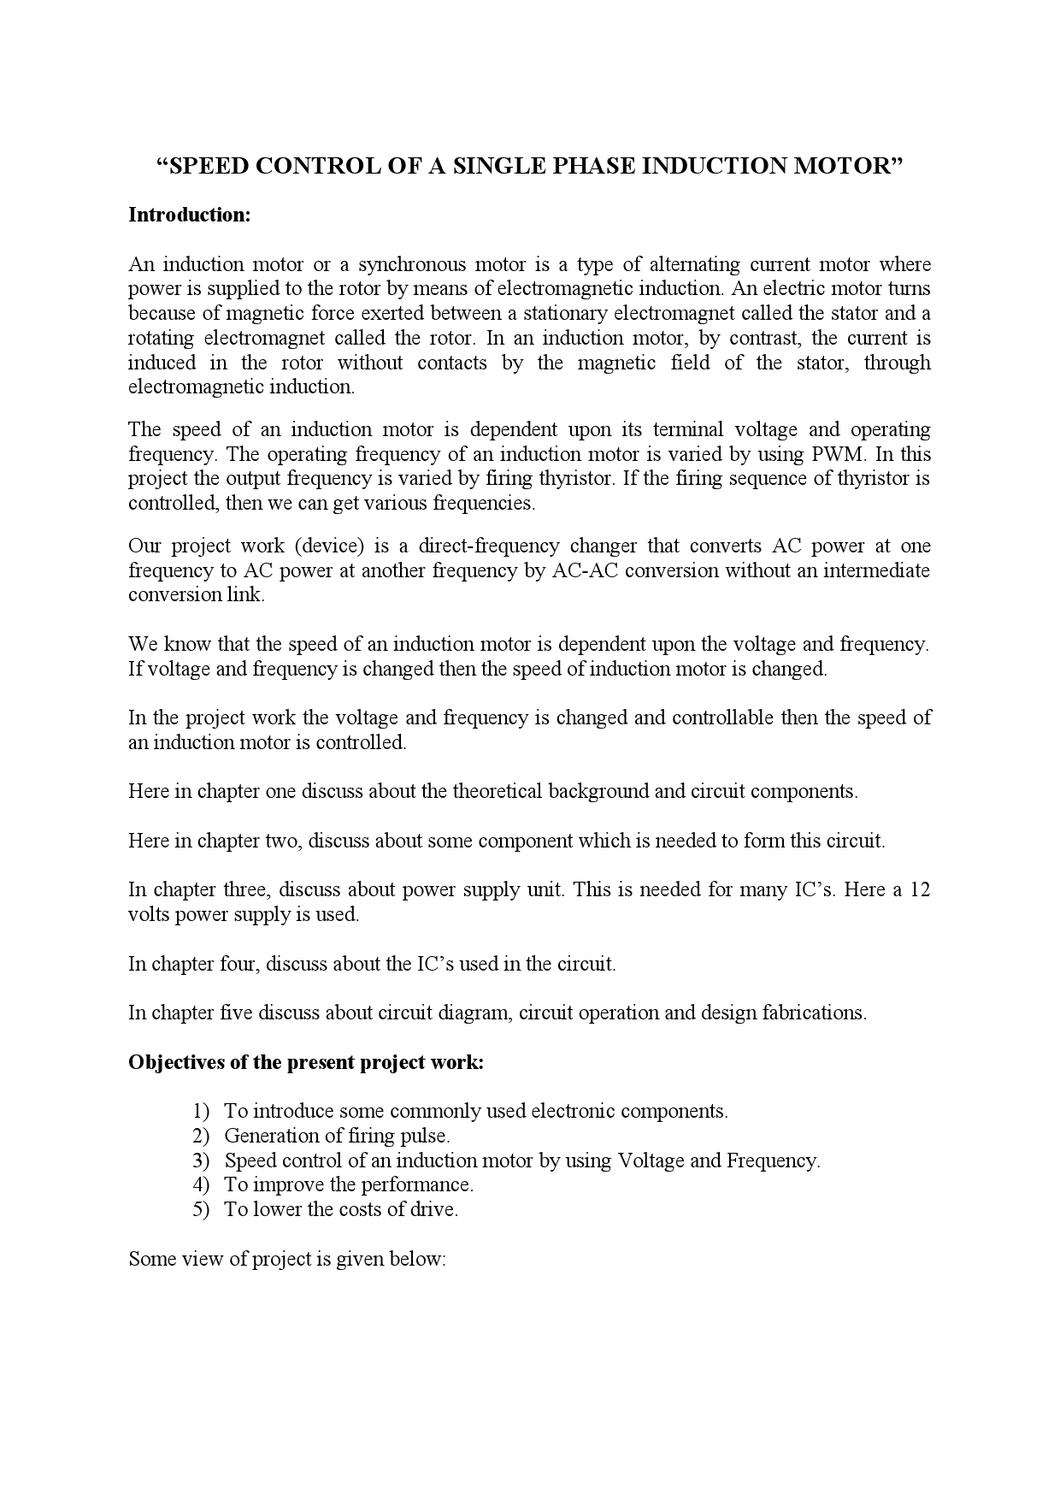 Speed Control Of A Single Phase Induction Motor By Zareen Aabedin Alternate Positivevoltage Switching Regulator Circuit Diagram Issuu